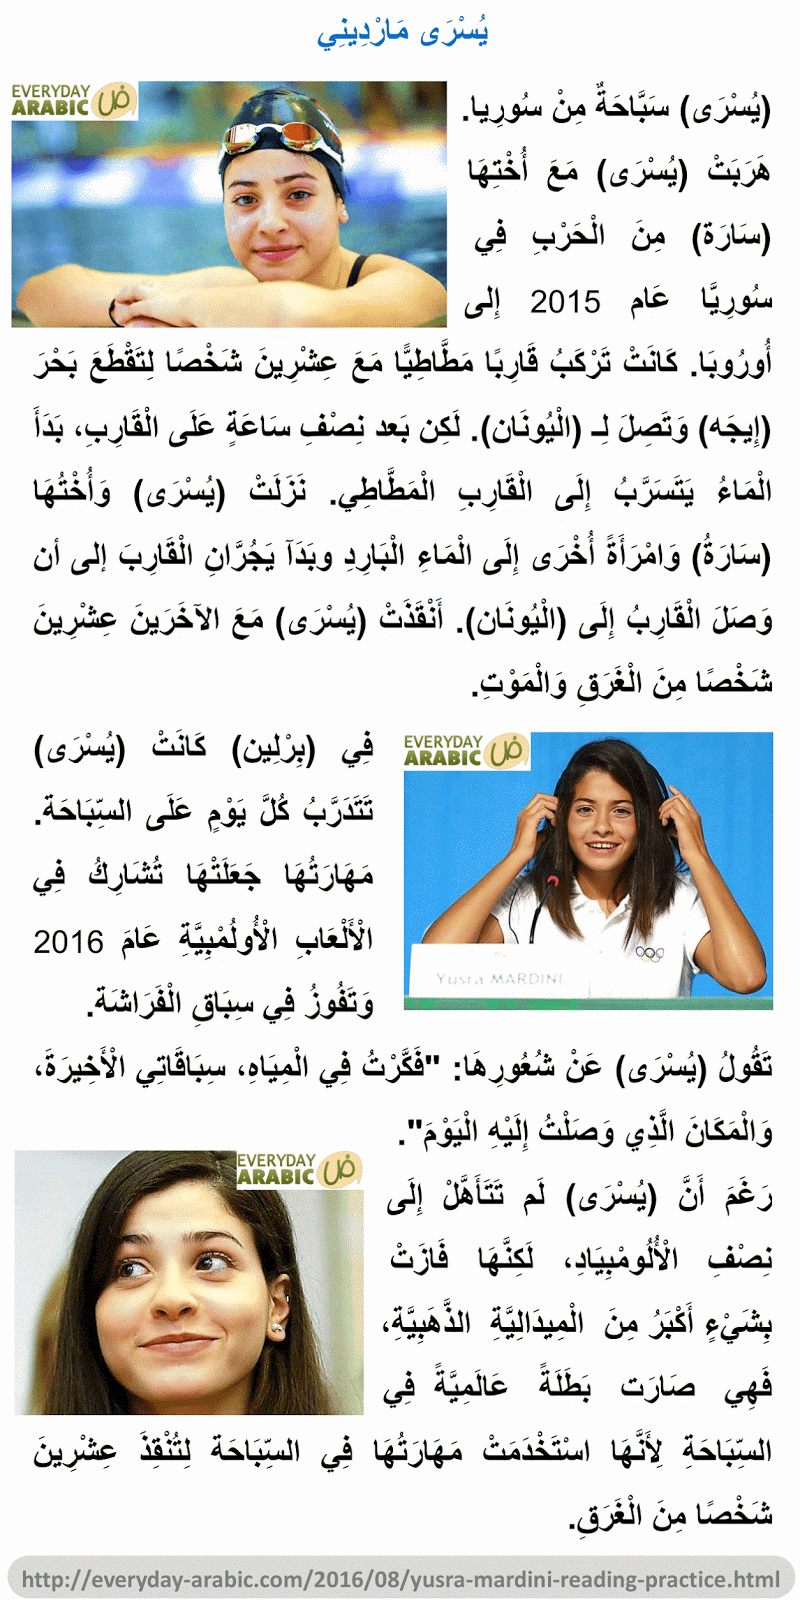 Learn About This Amazing Girl And Her Story And Practice Arabicreading English Translation And Recordin Learn Arabic Online Learning Arabic Arabic Language [ 1600 x 800 Pixel ]